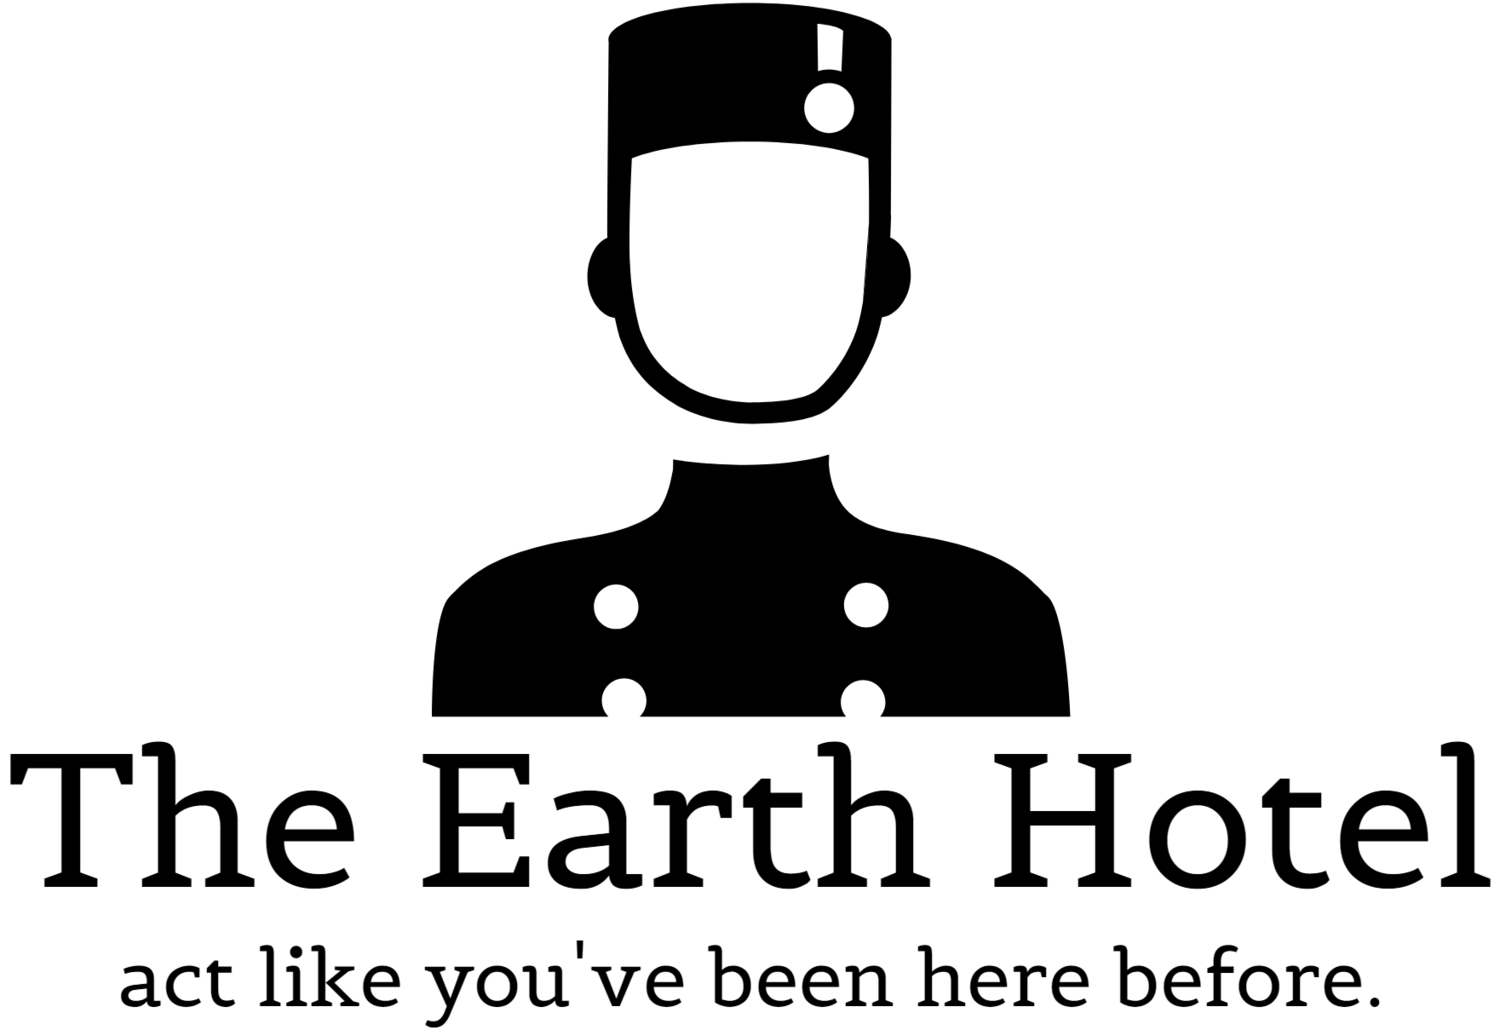 The Earth Hotel